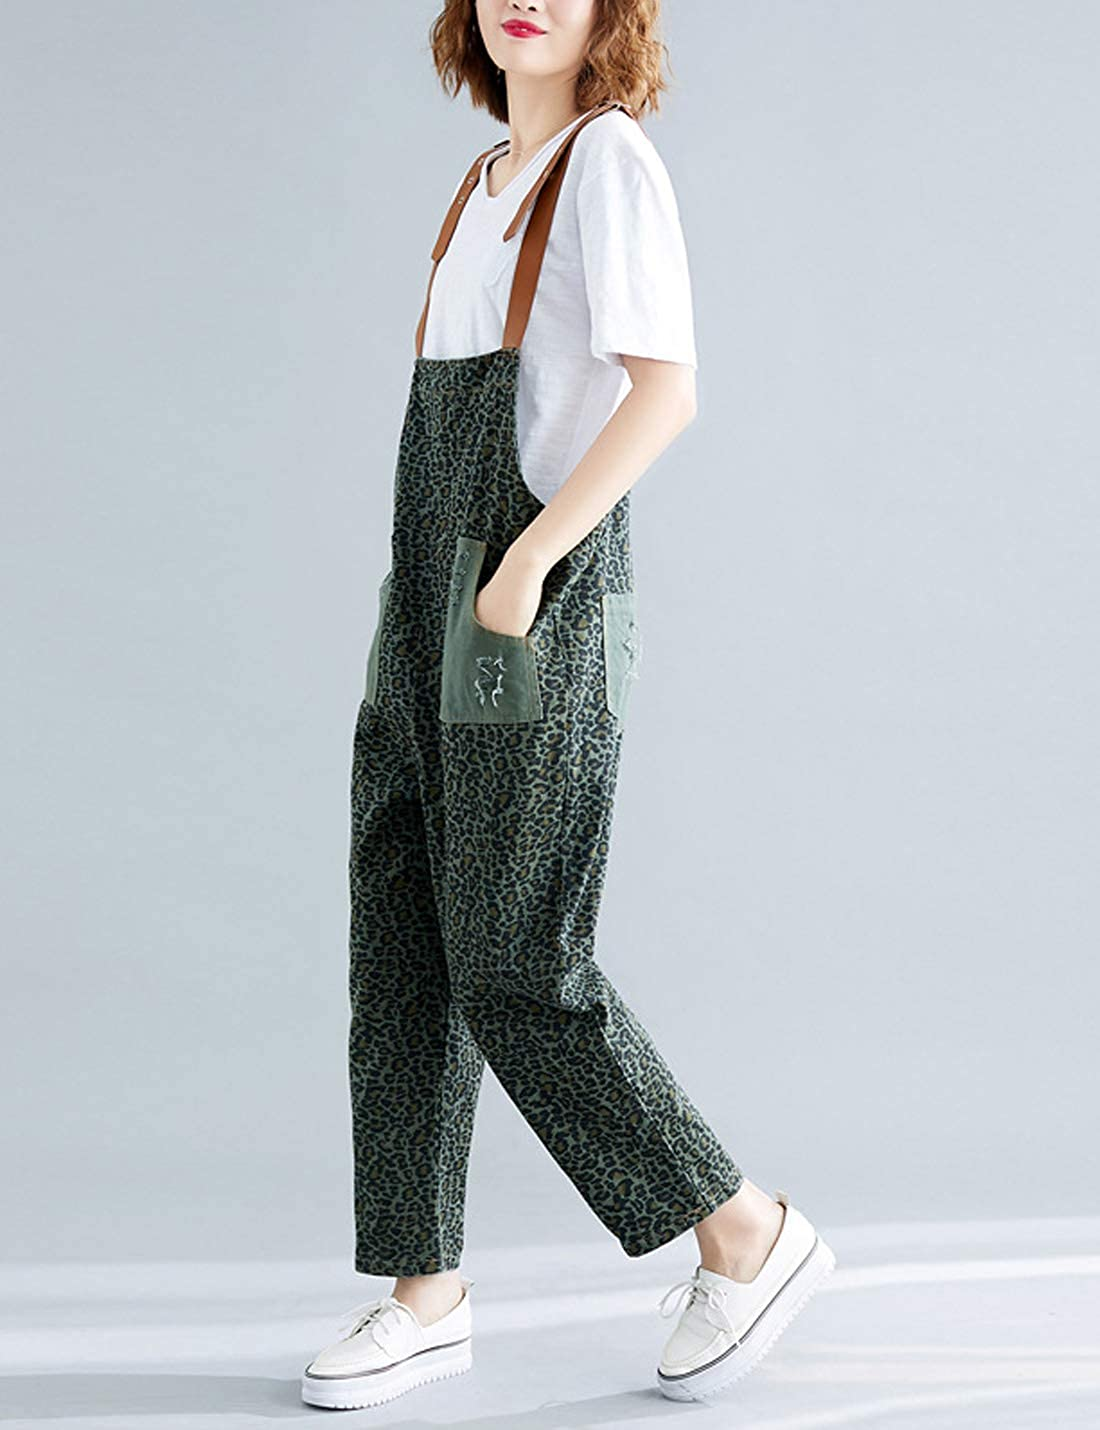 Gihuo Womens Leopard Print Ripped Denim Overall Wide Leg Jumpsuit Rompers with Pockets